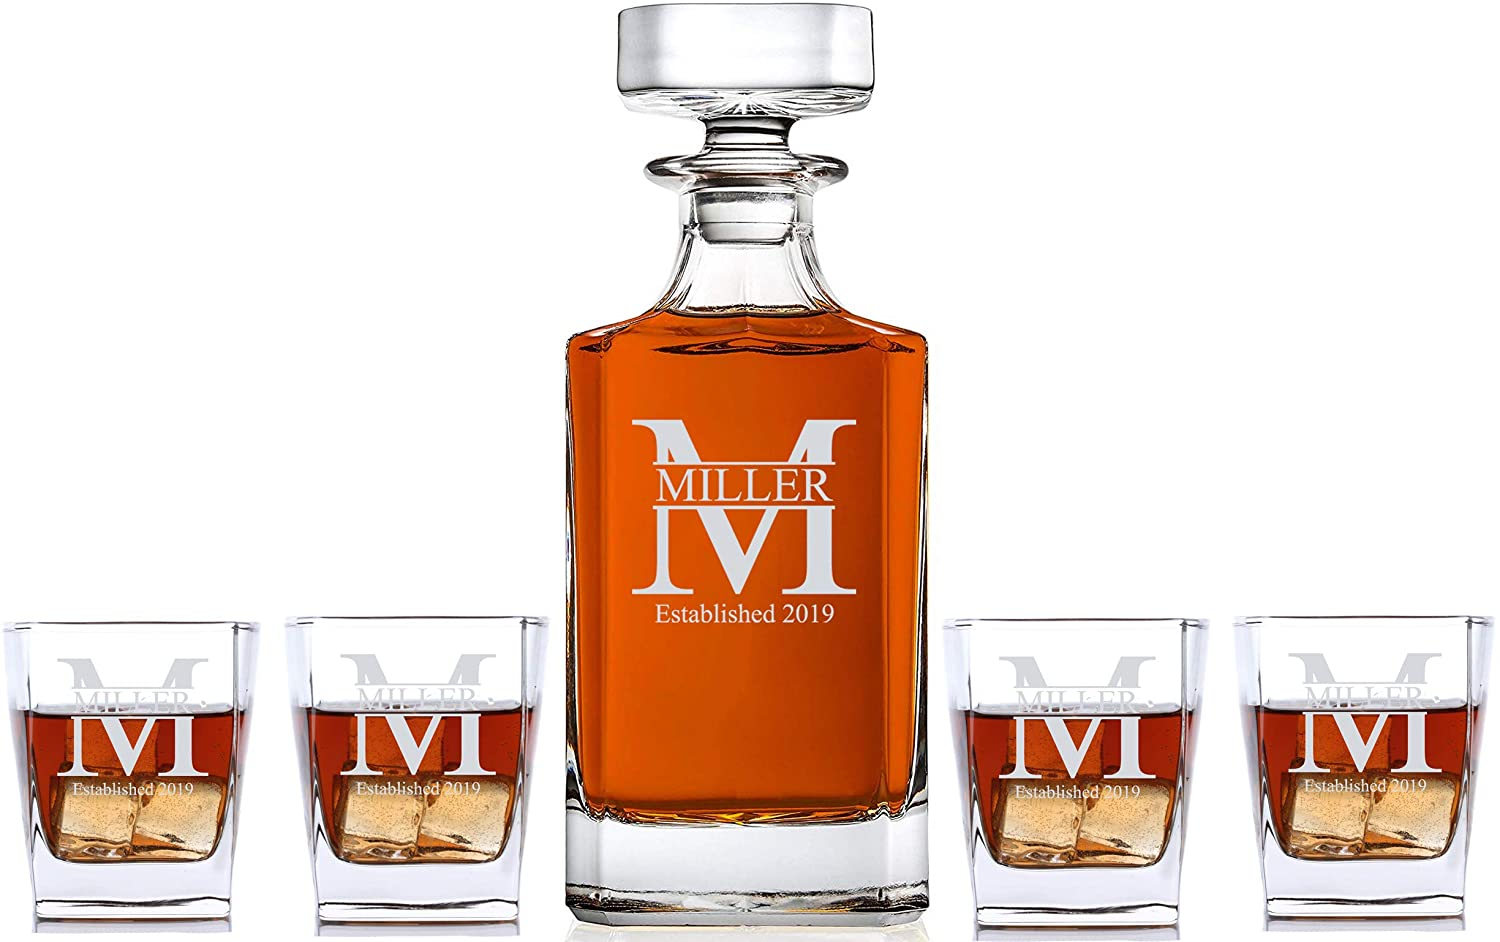 Personalized 5 pc Whiskey Decanter Set - Decanter and 4 Glasses Gift Set - Custom Engraved